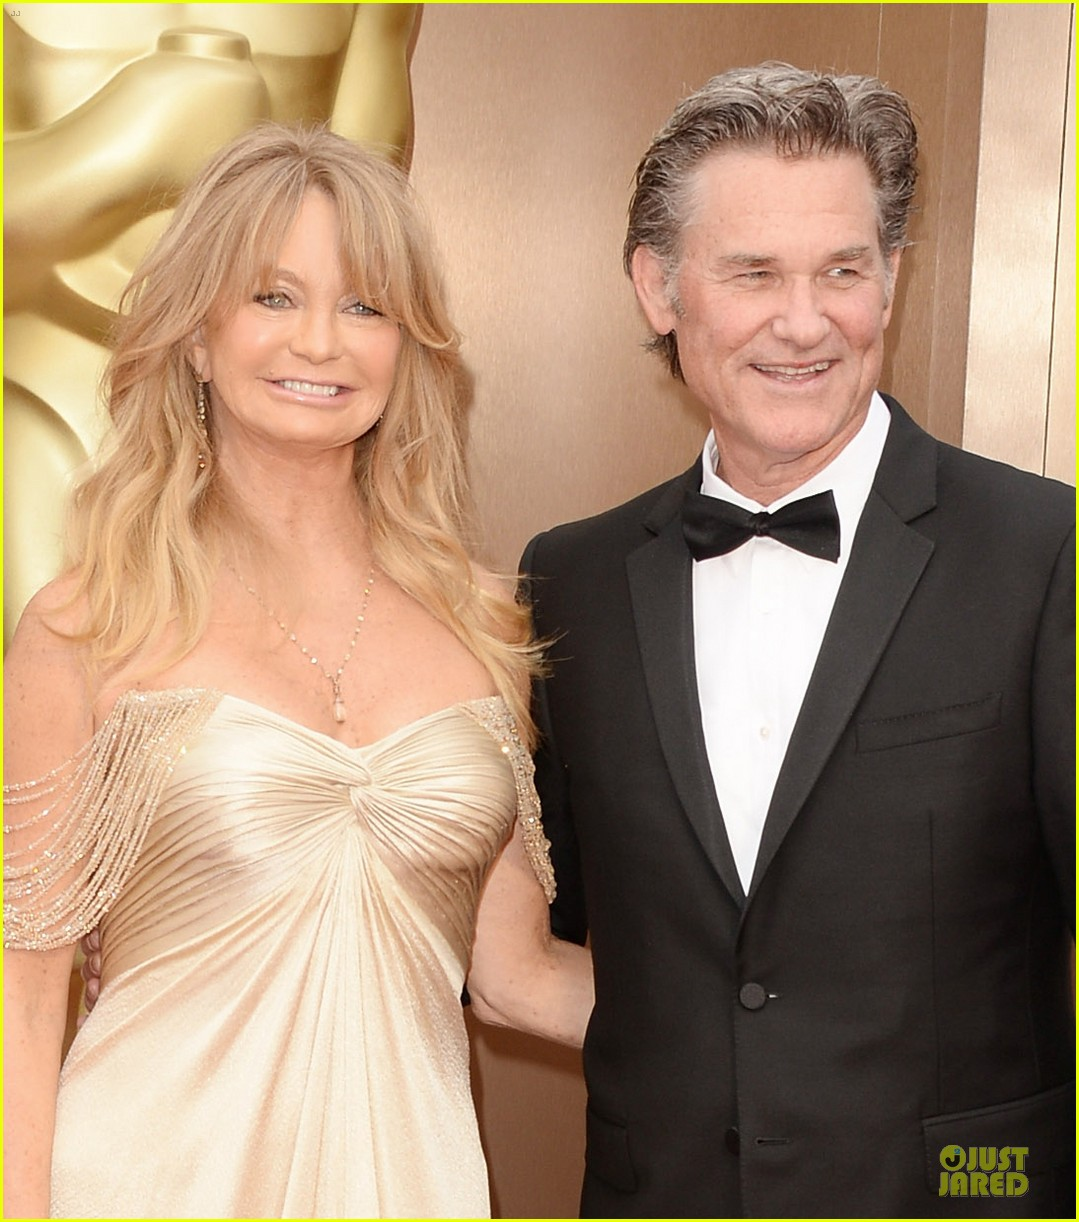 presenter goldie hawn golden goddess on oscars 2014 red carpet with kurt russell 04